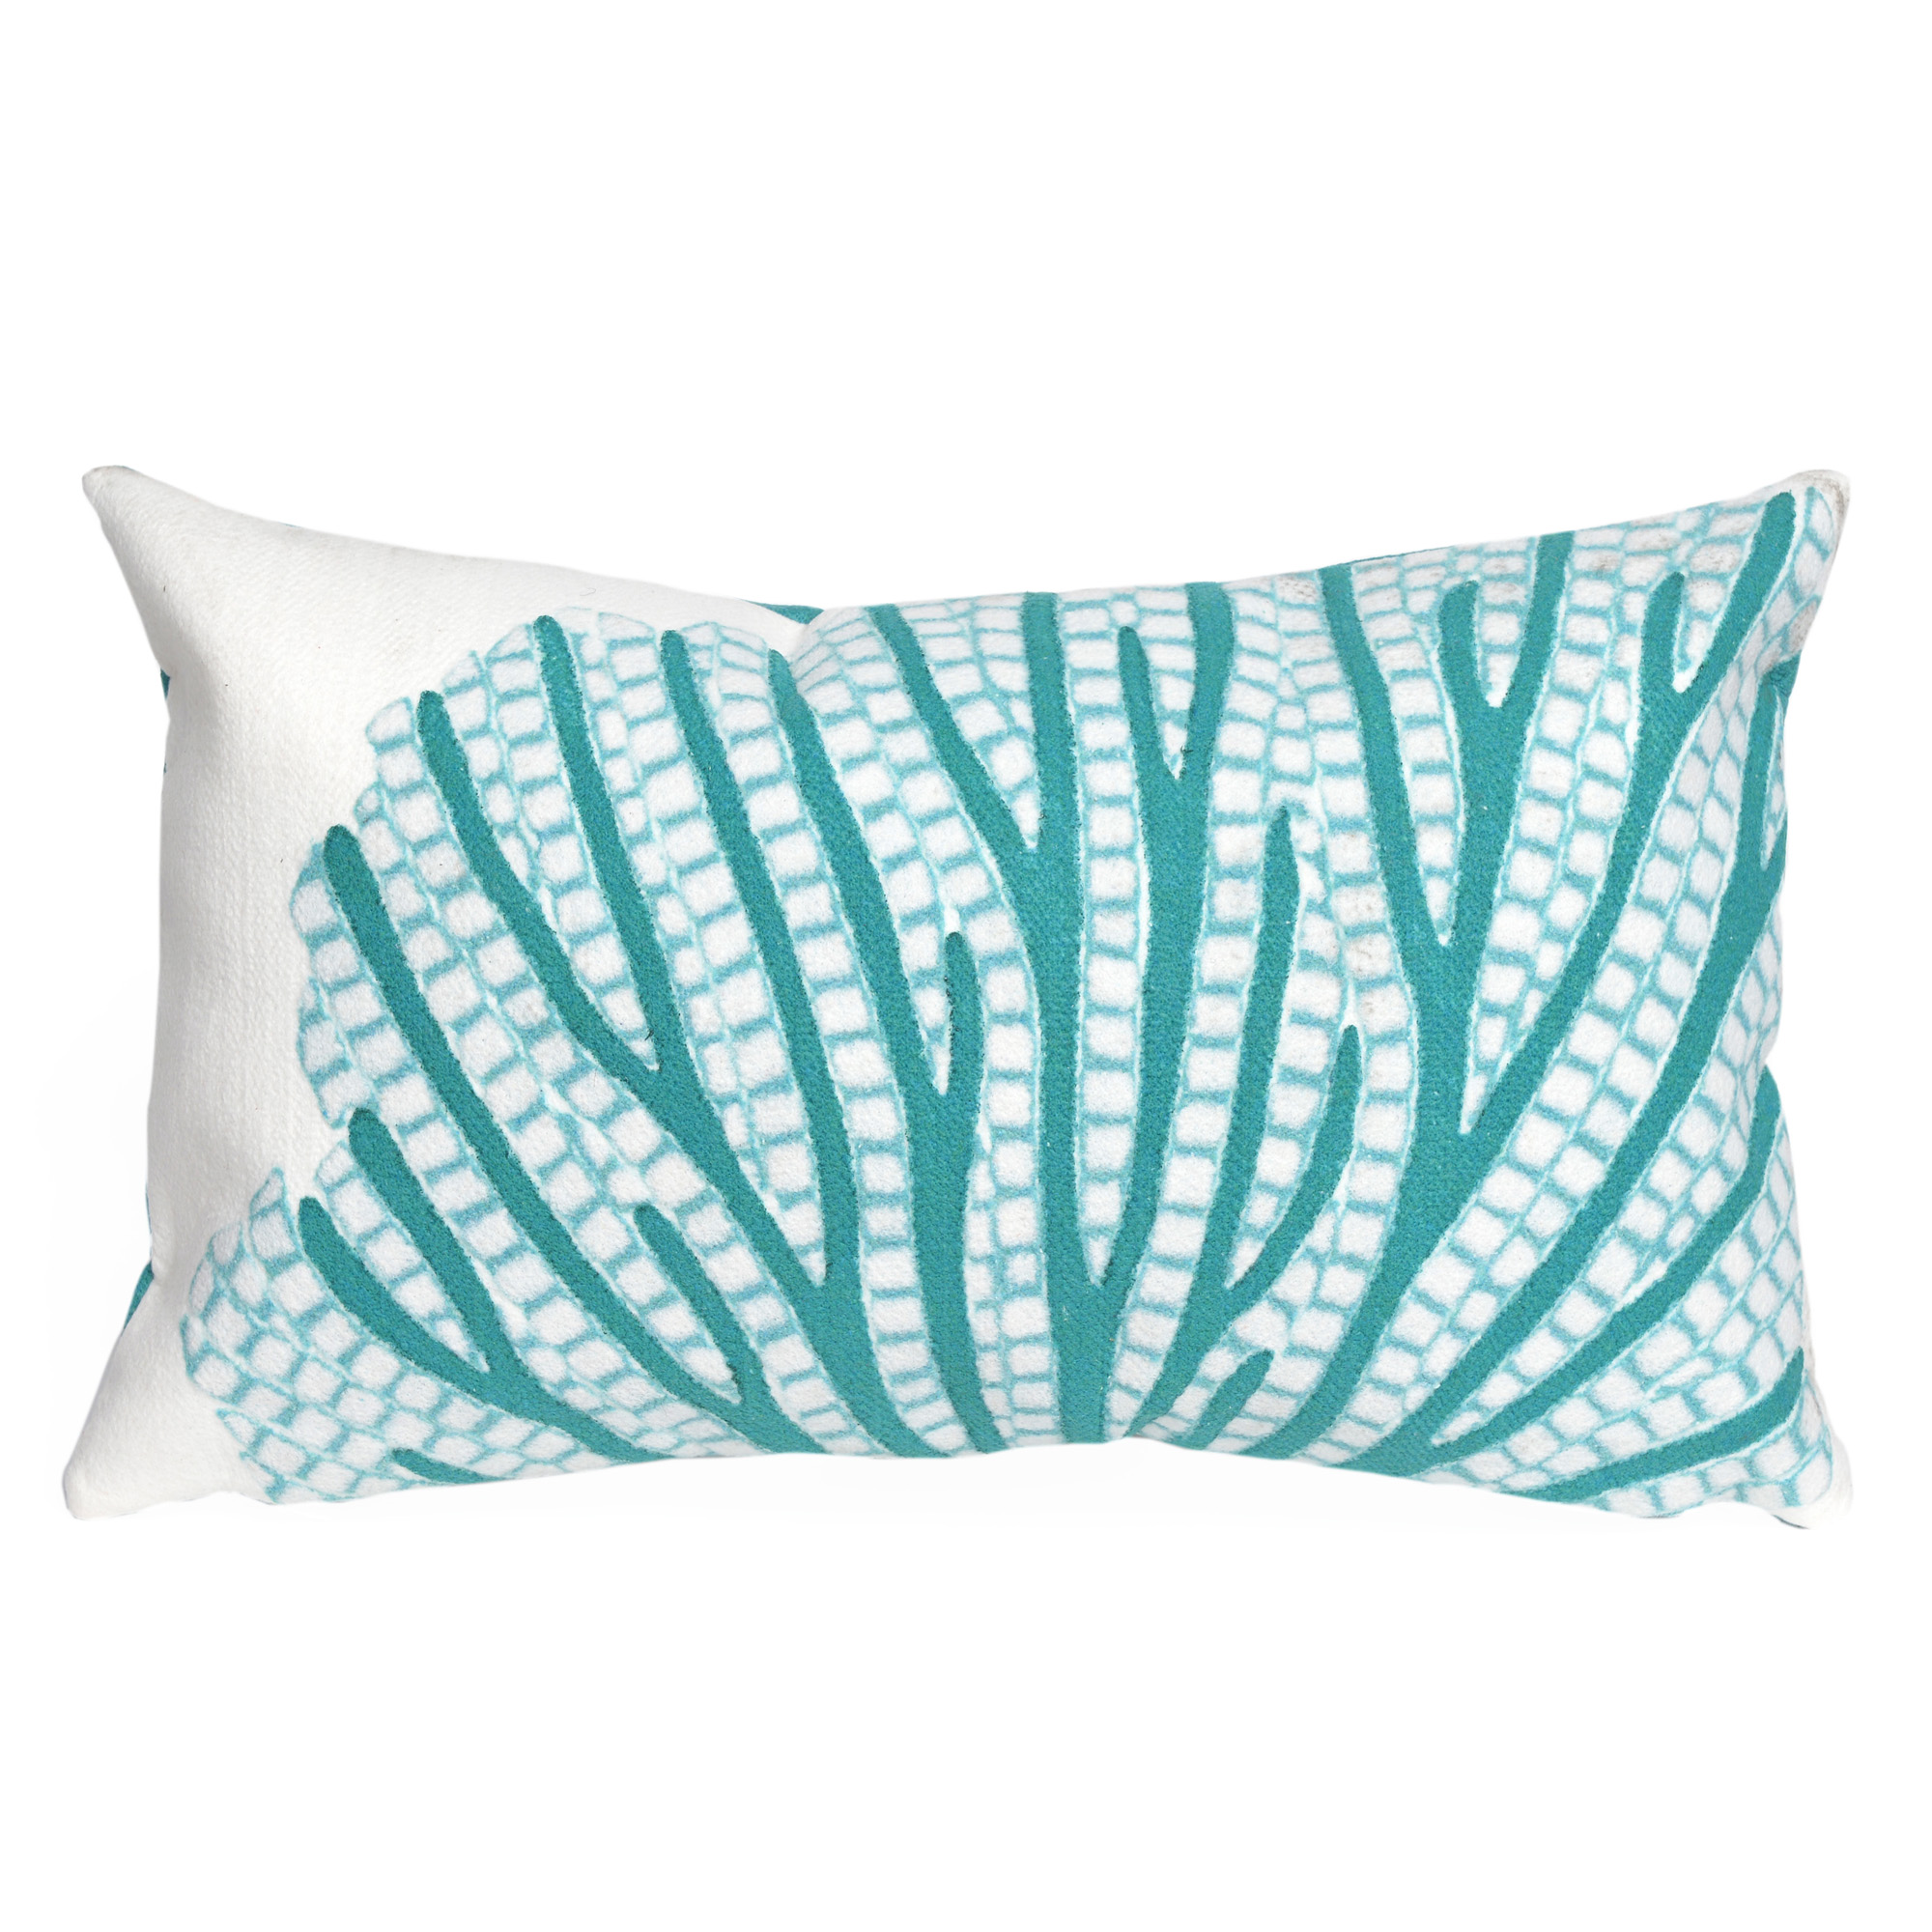 Liora Manne Visions III Coral Fan Indoor/Outdoor Pillow Blue 12 X 20